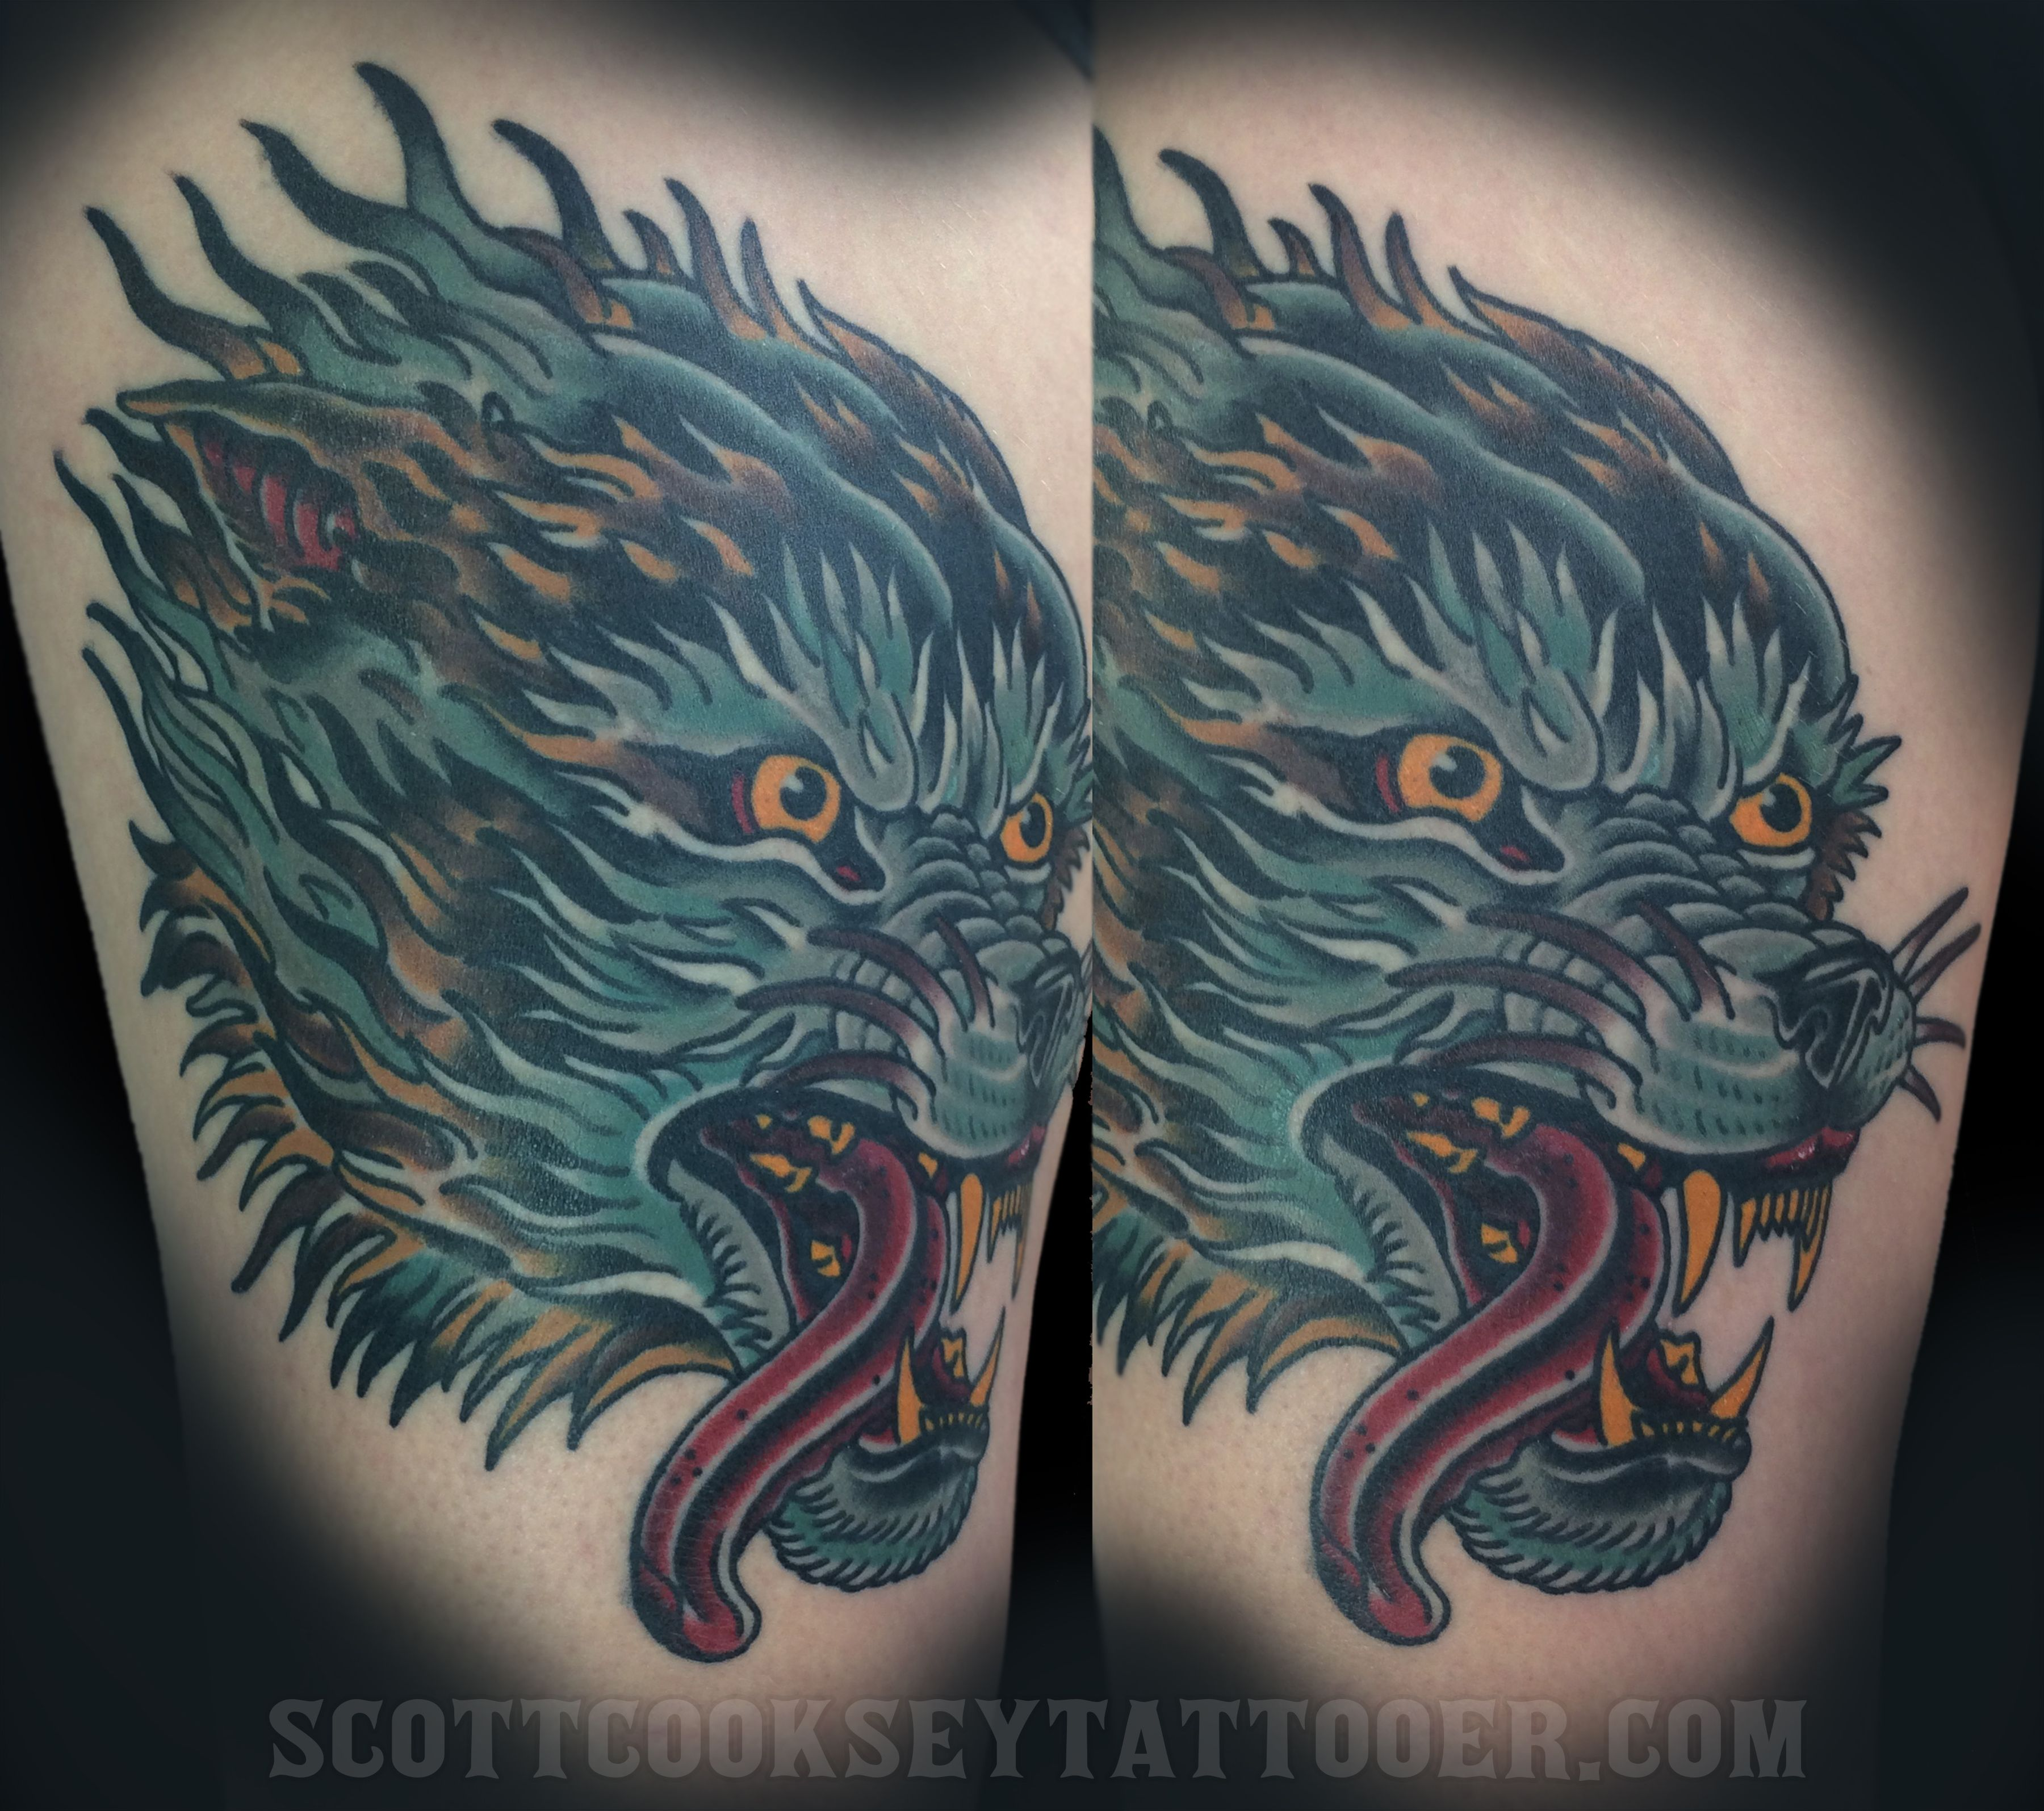 American traditional wolf head tattoo by scott cooksey of